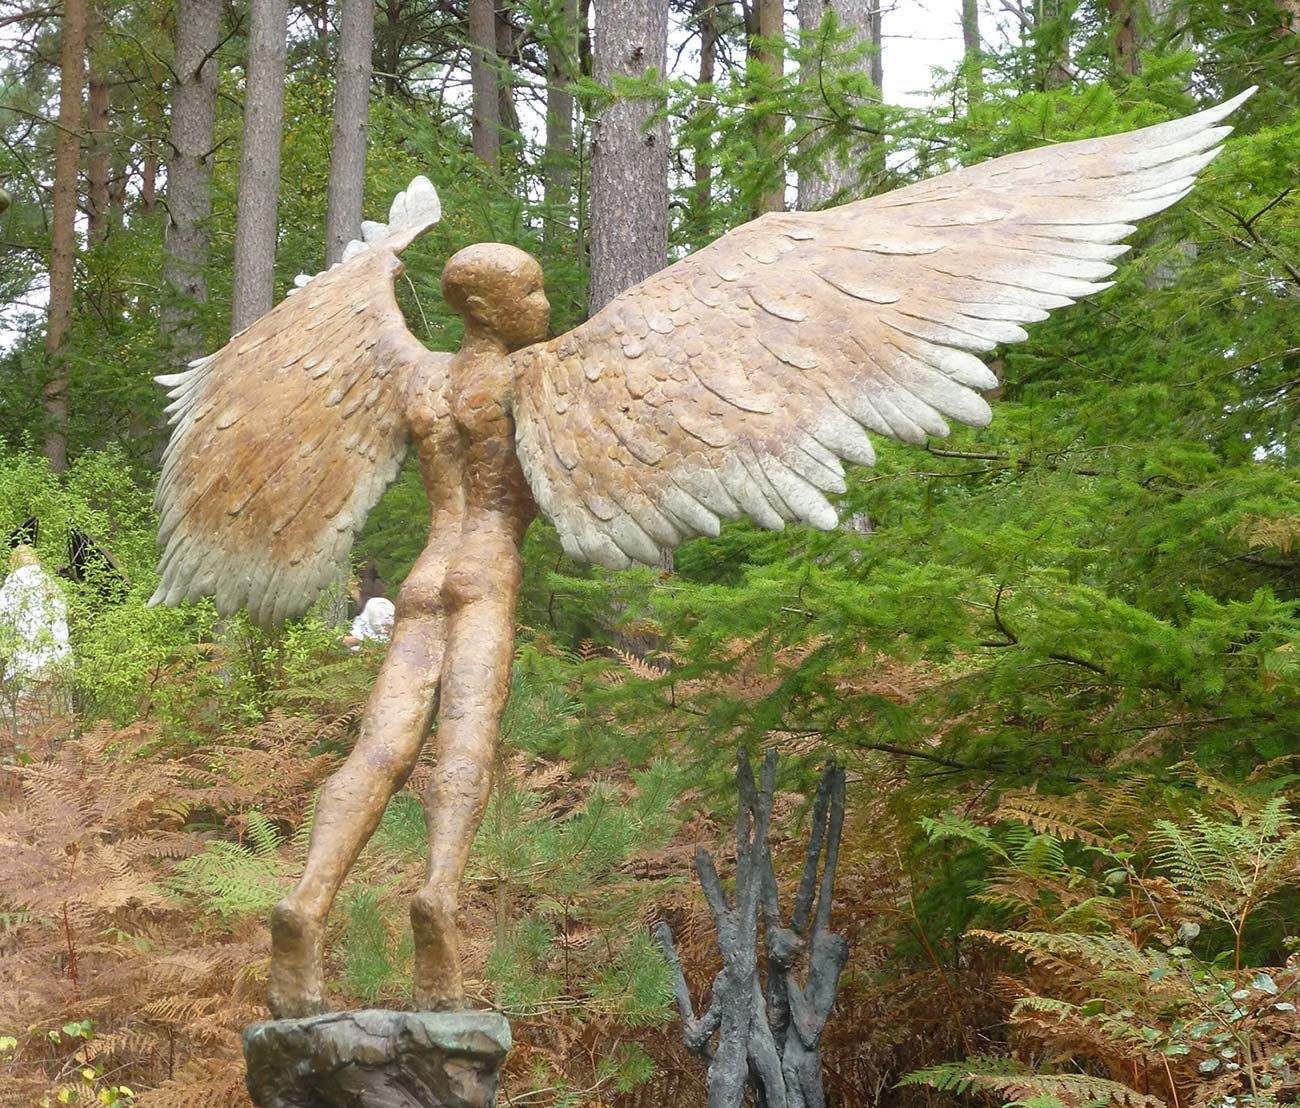 Icarus II. Large bronze sculpture in garden.